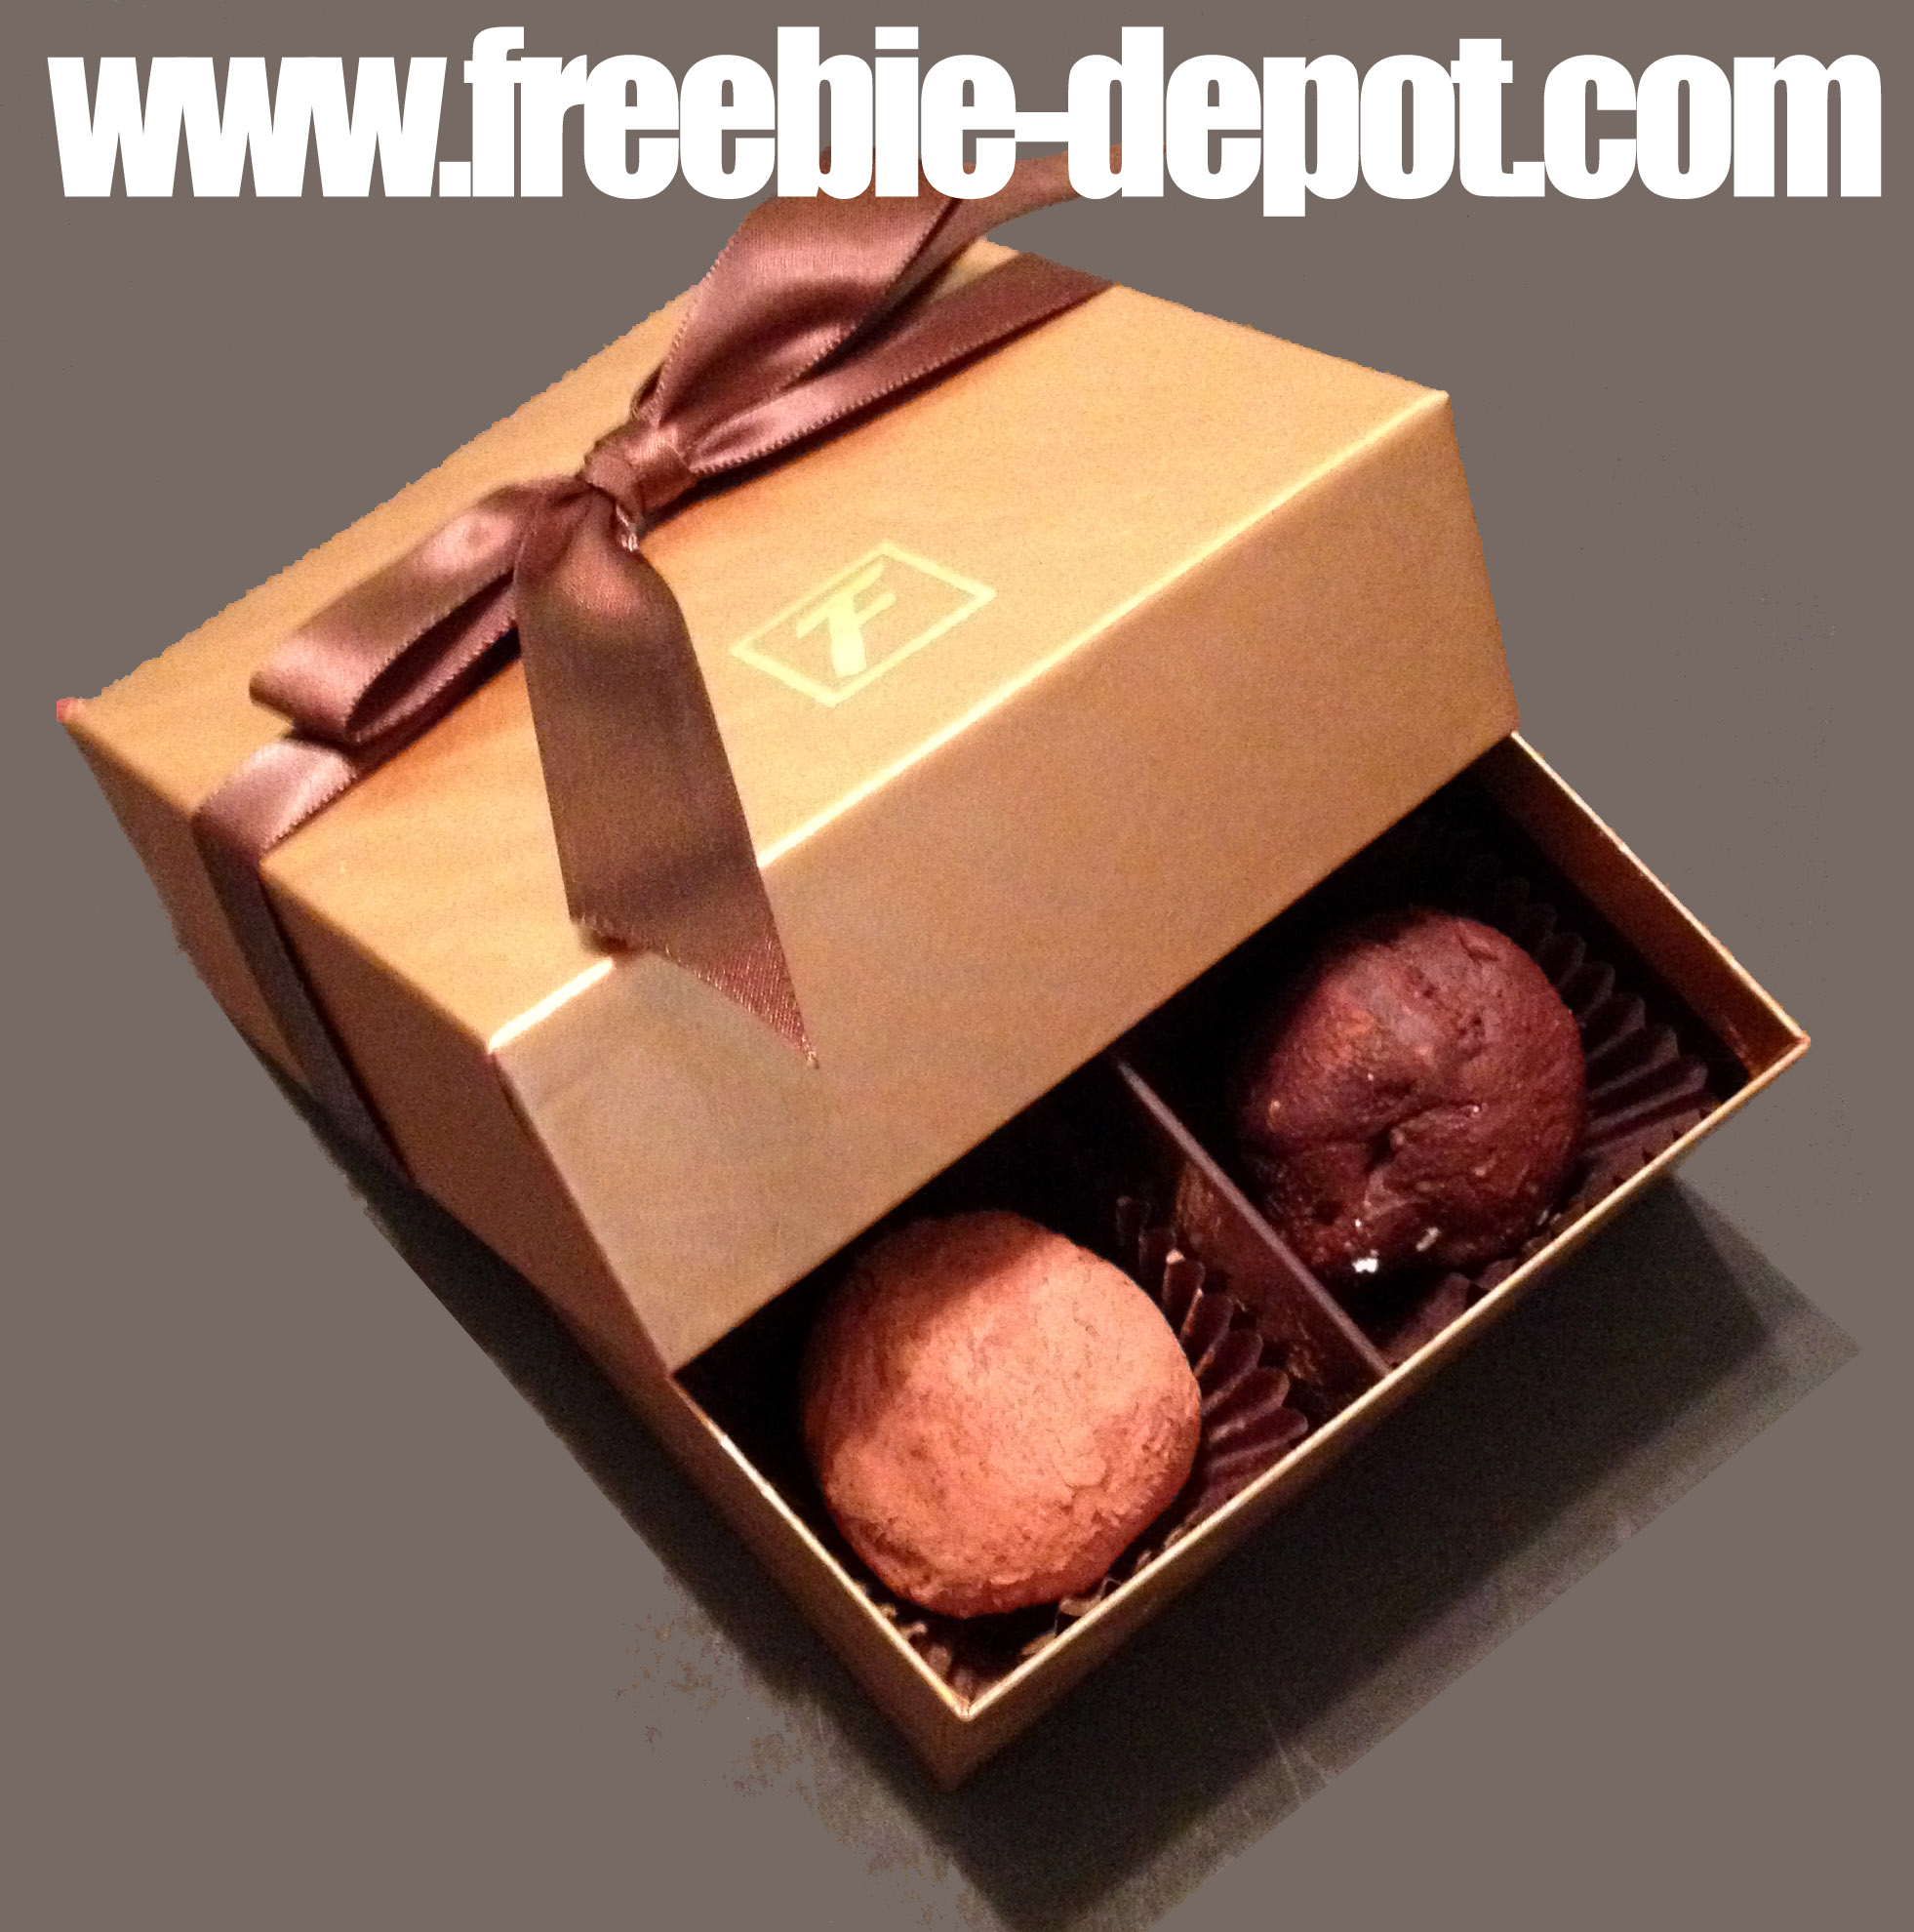 Free-Birthday-Truffles